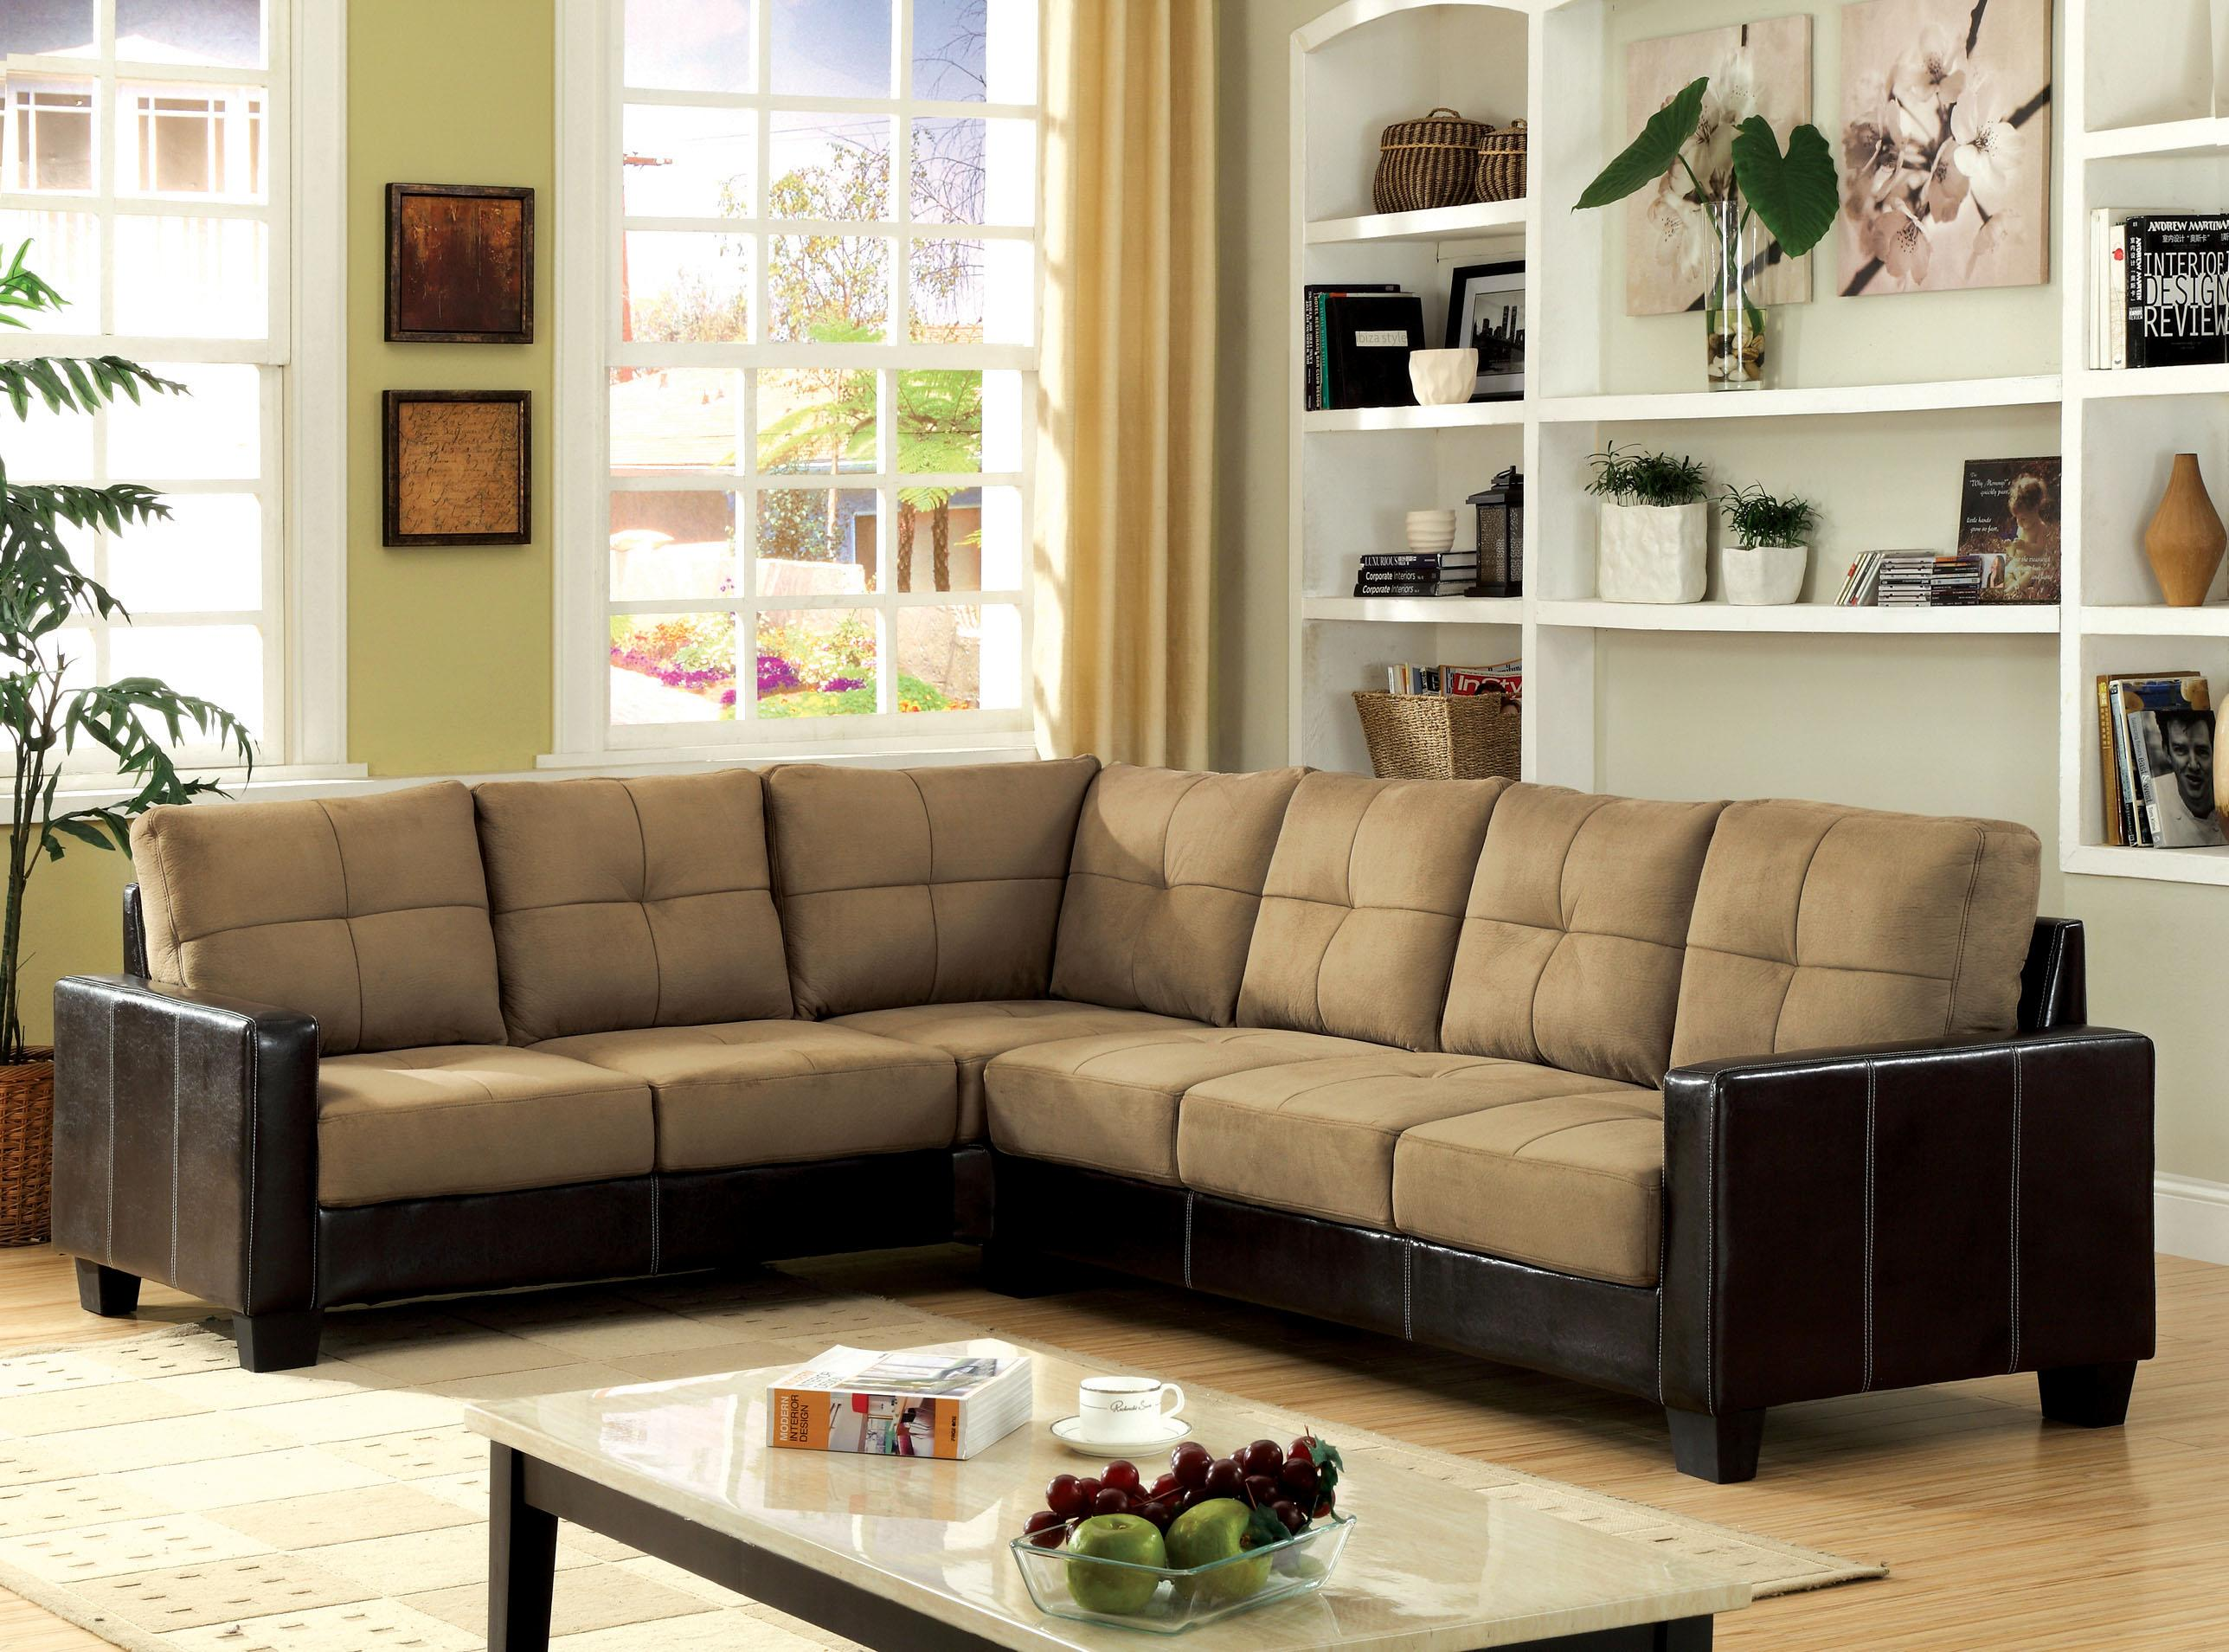 Amazoncom Furniture Of America Microfiber Upholstered Sectional